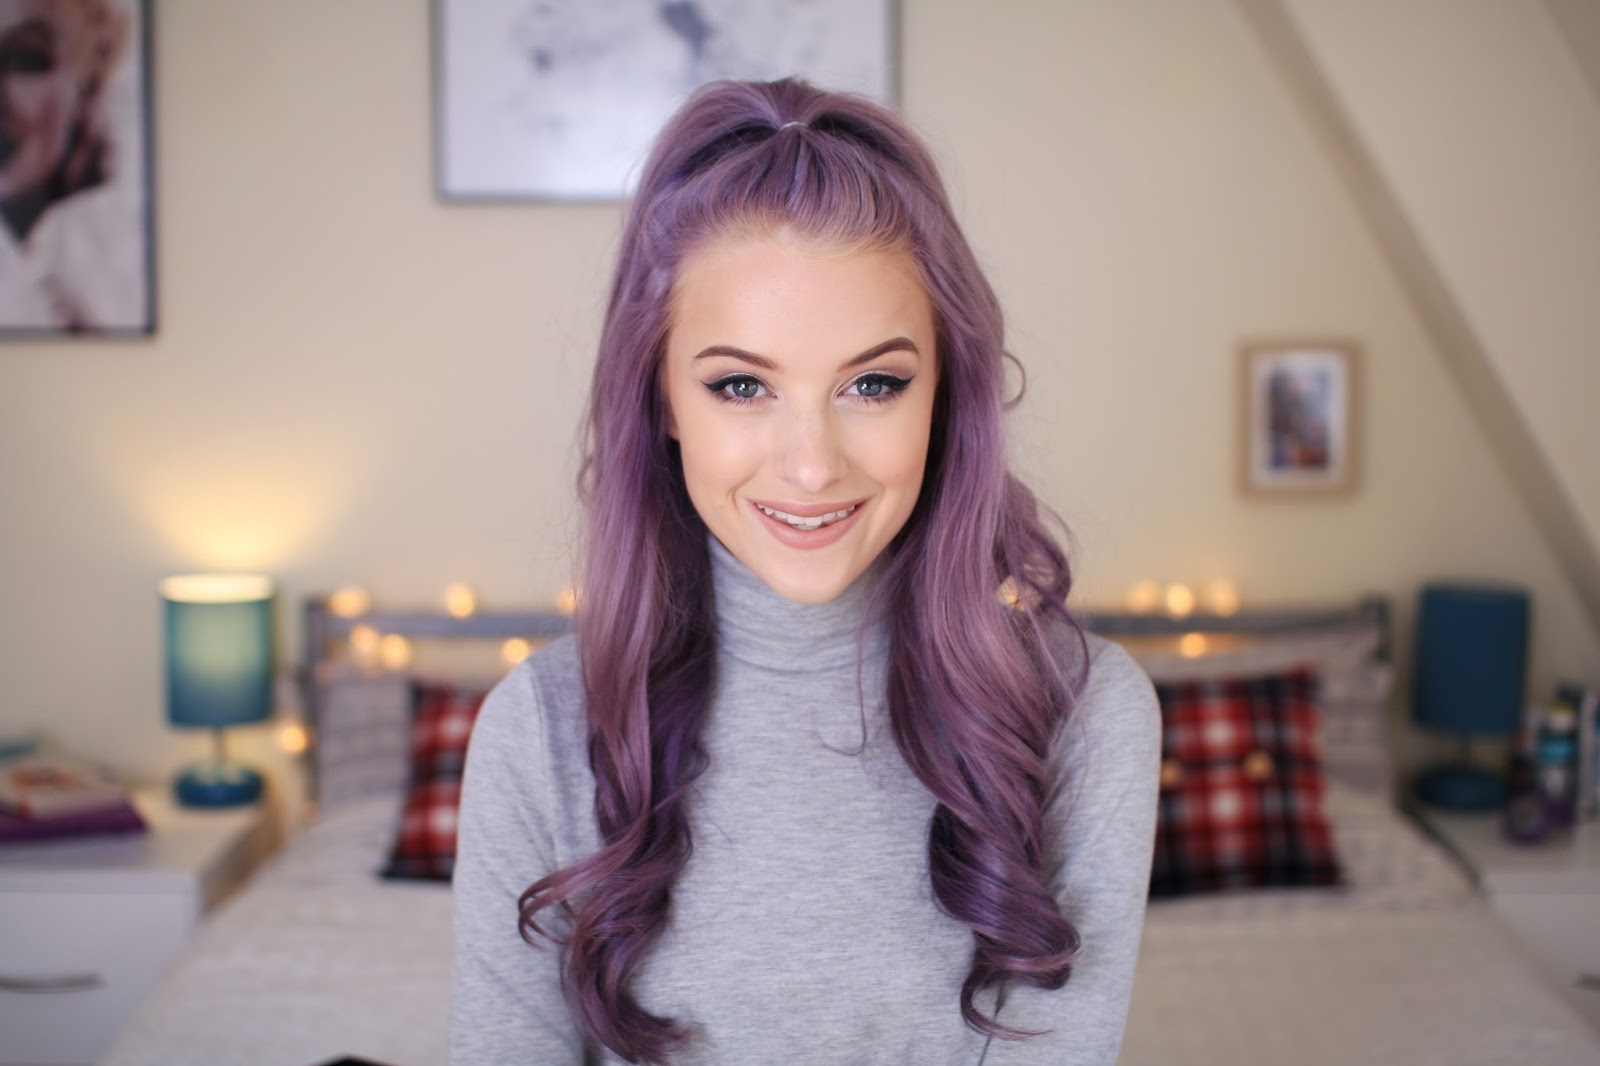 half up half down hairstyle with purple curls